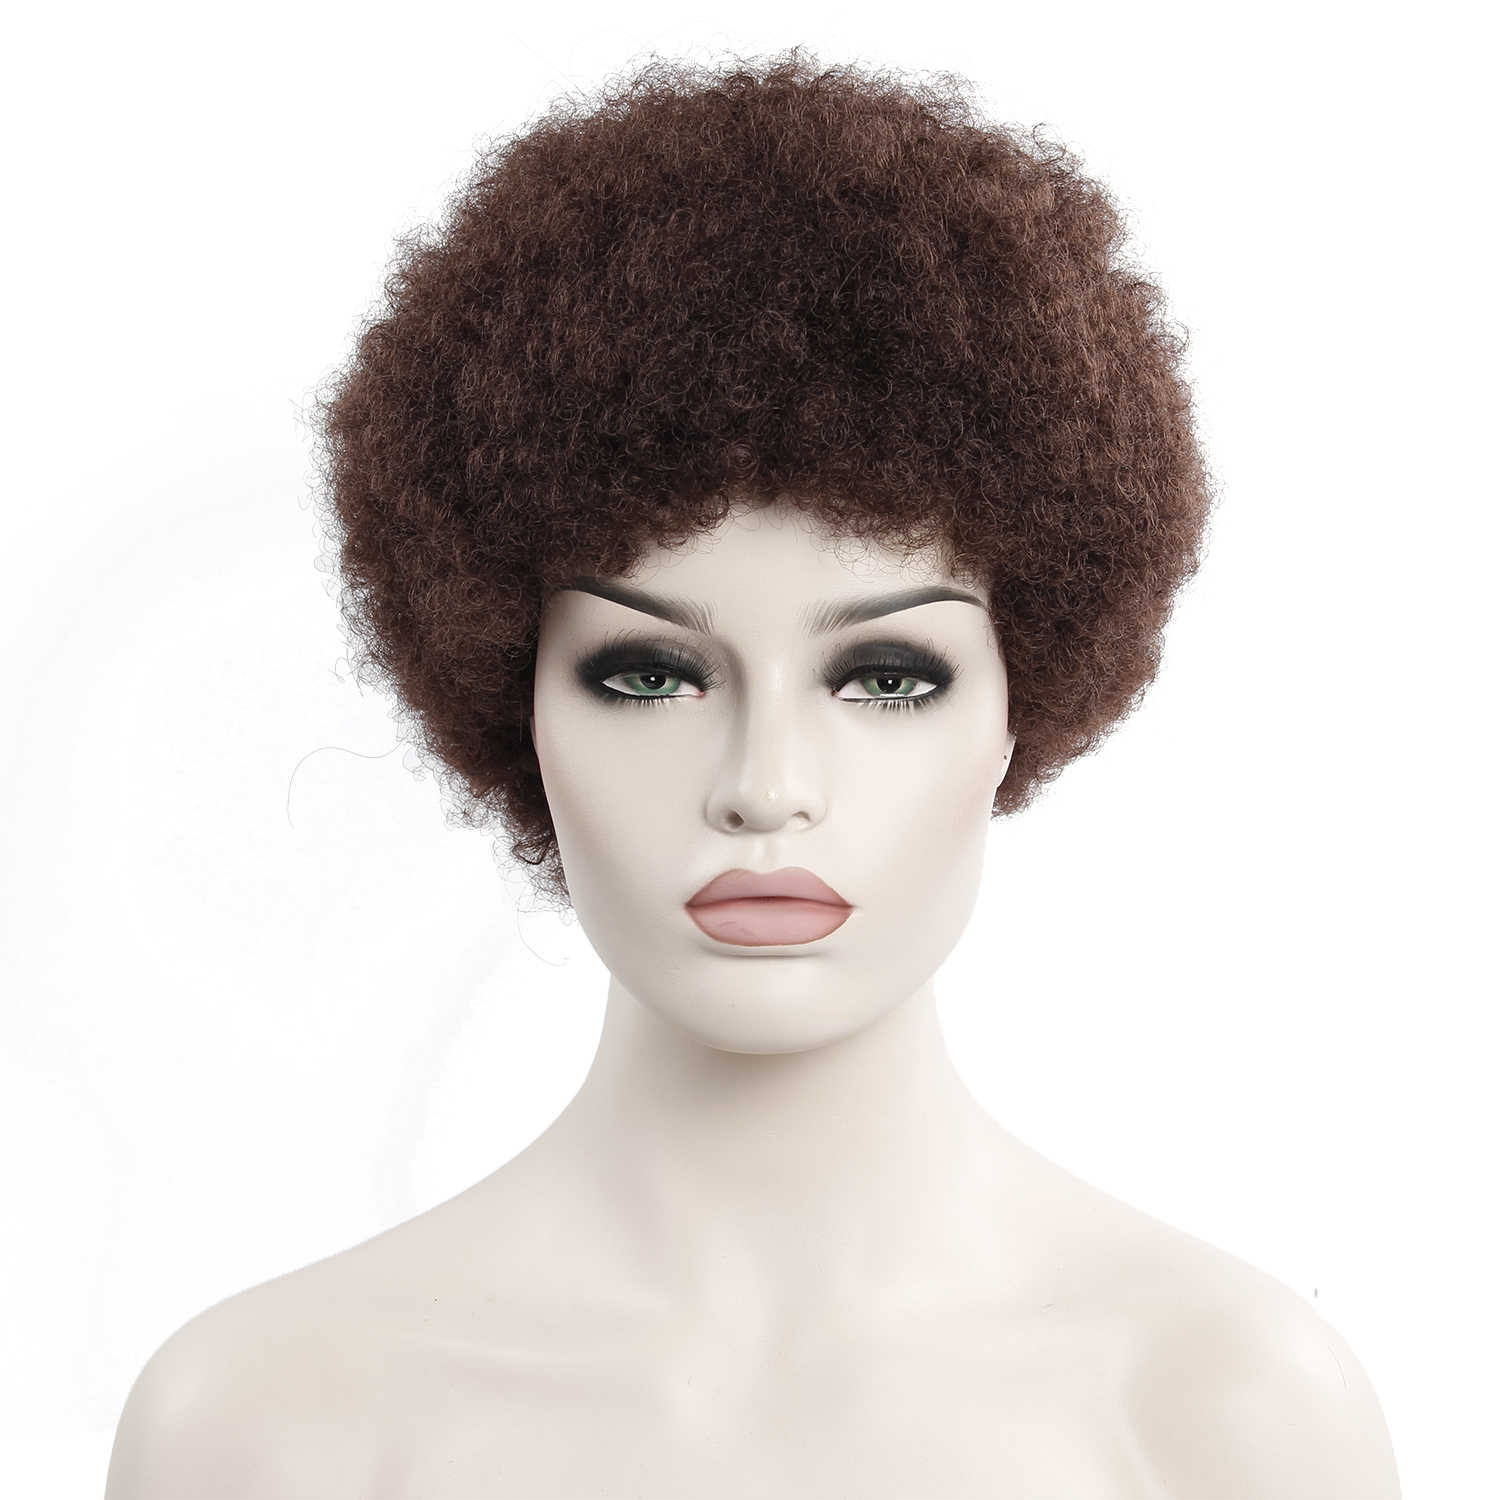 Afro Wig Mens Curly Hair Brown Synthetic Retro Cosplay Wigs For Women Fluffy Wigs For Women Black Hair